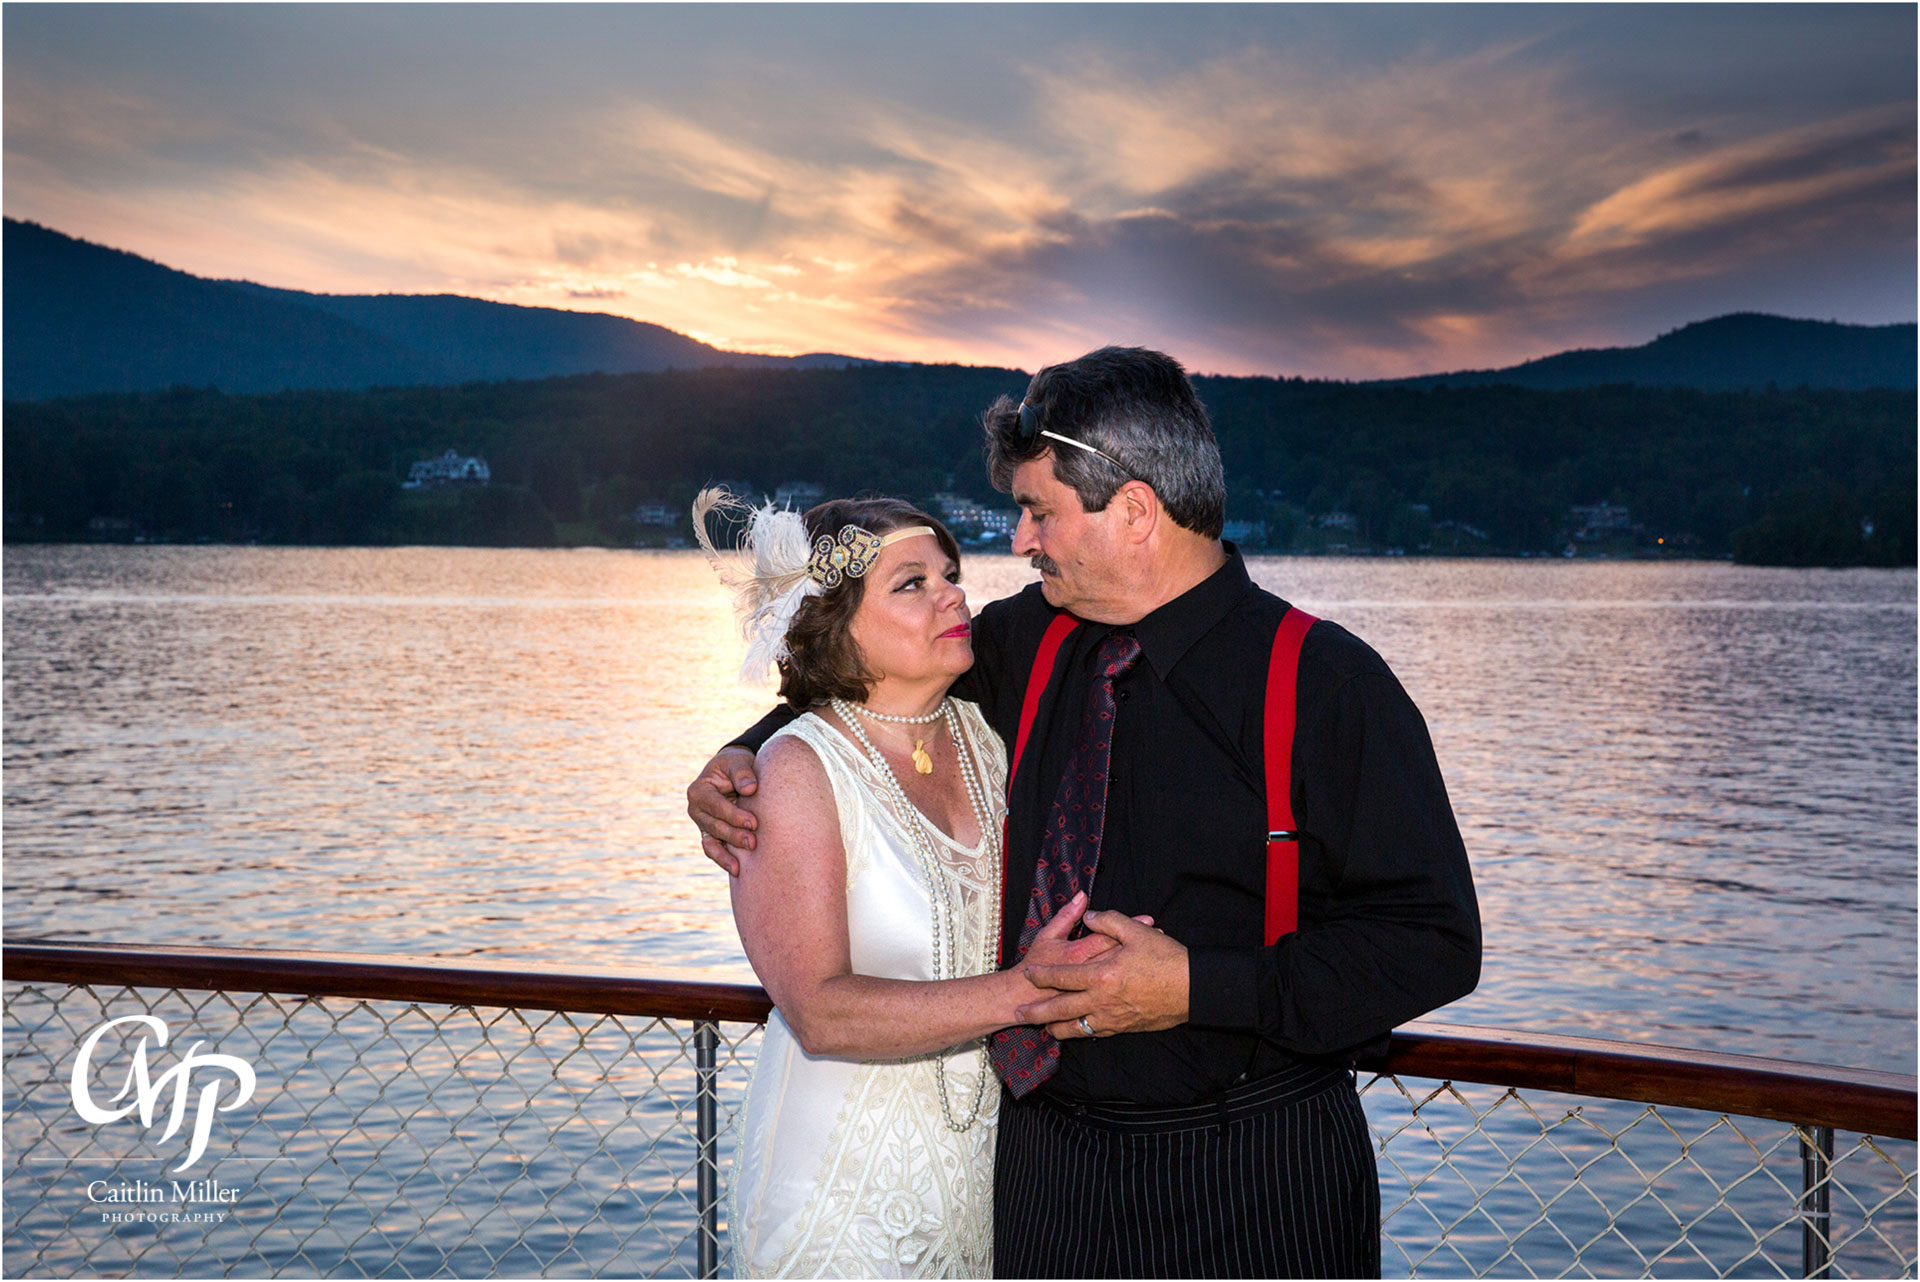 bombard-35.jpg from Jan and Robert's vow renewal on shoreline Cruise's Adirondac Boat on Lake George, NY by Saratoga Wedding Photographer Caitlin Miller Photography. Lake George Wedding Photographer. Stamford wedding photographer. Albany wedding photographer. Shoreline Cruises Wedding Photographer. Saratoga Wedding Photographer